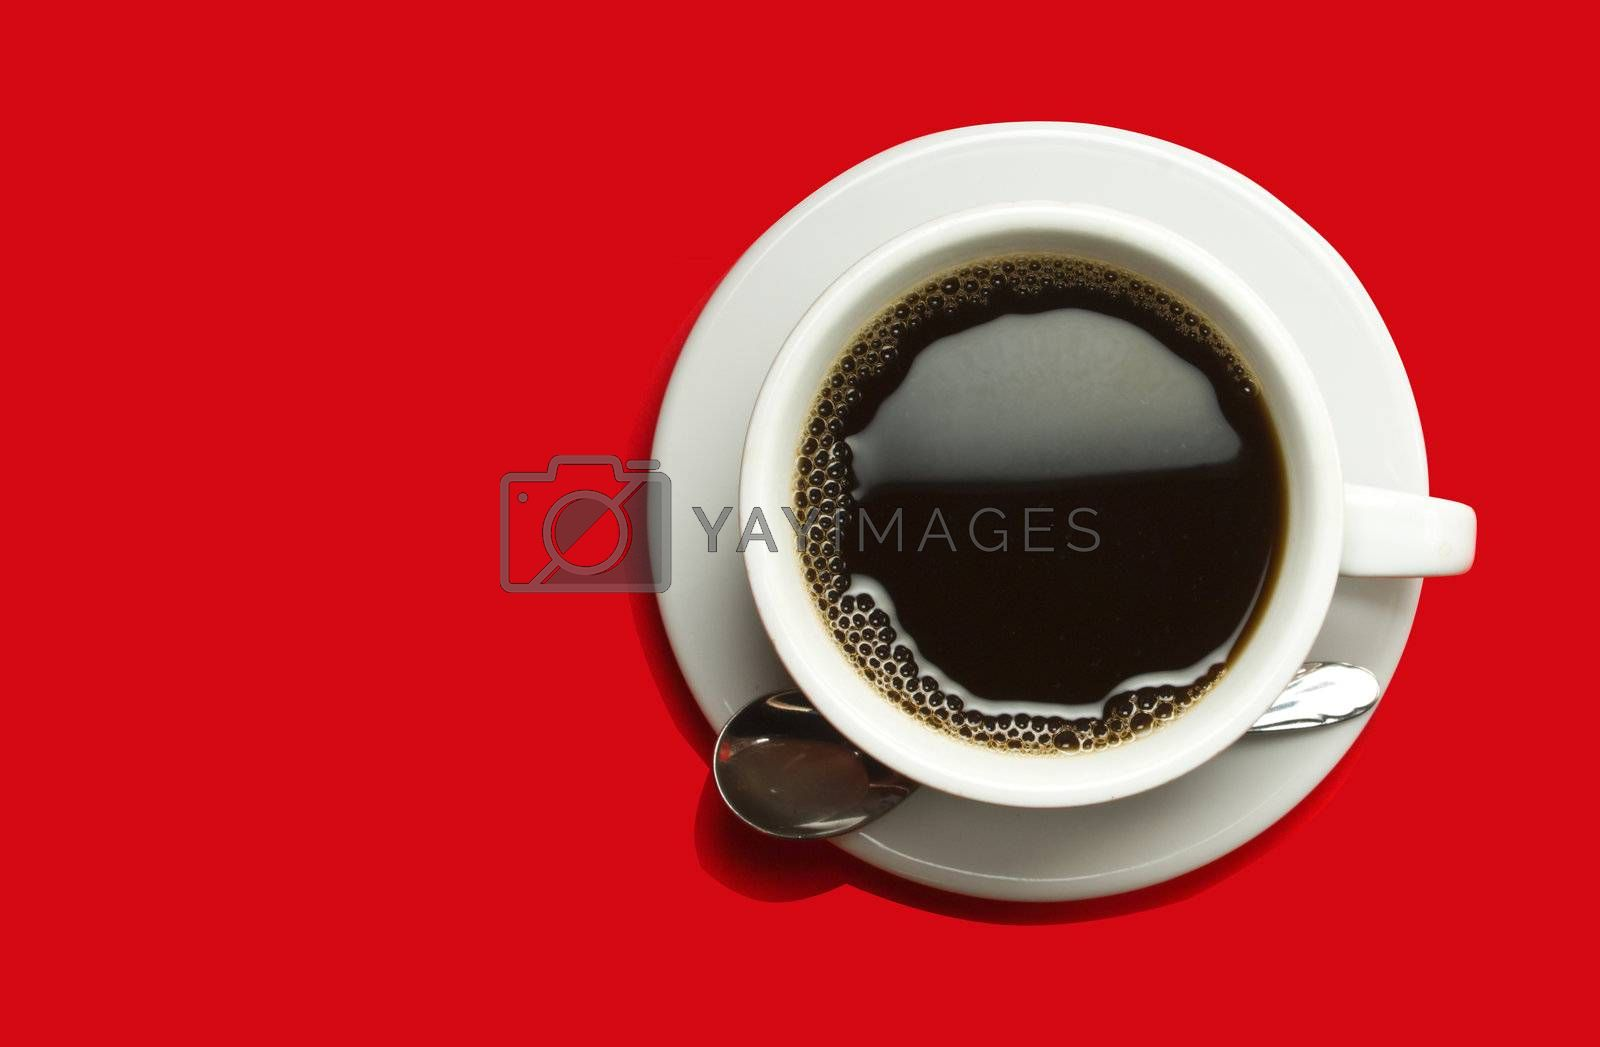 Picture of black coffee in a white cup on a red background